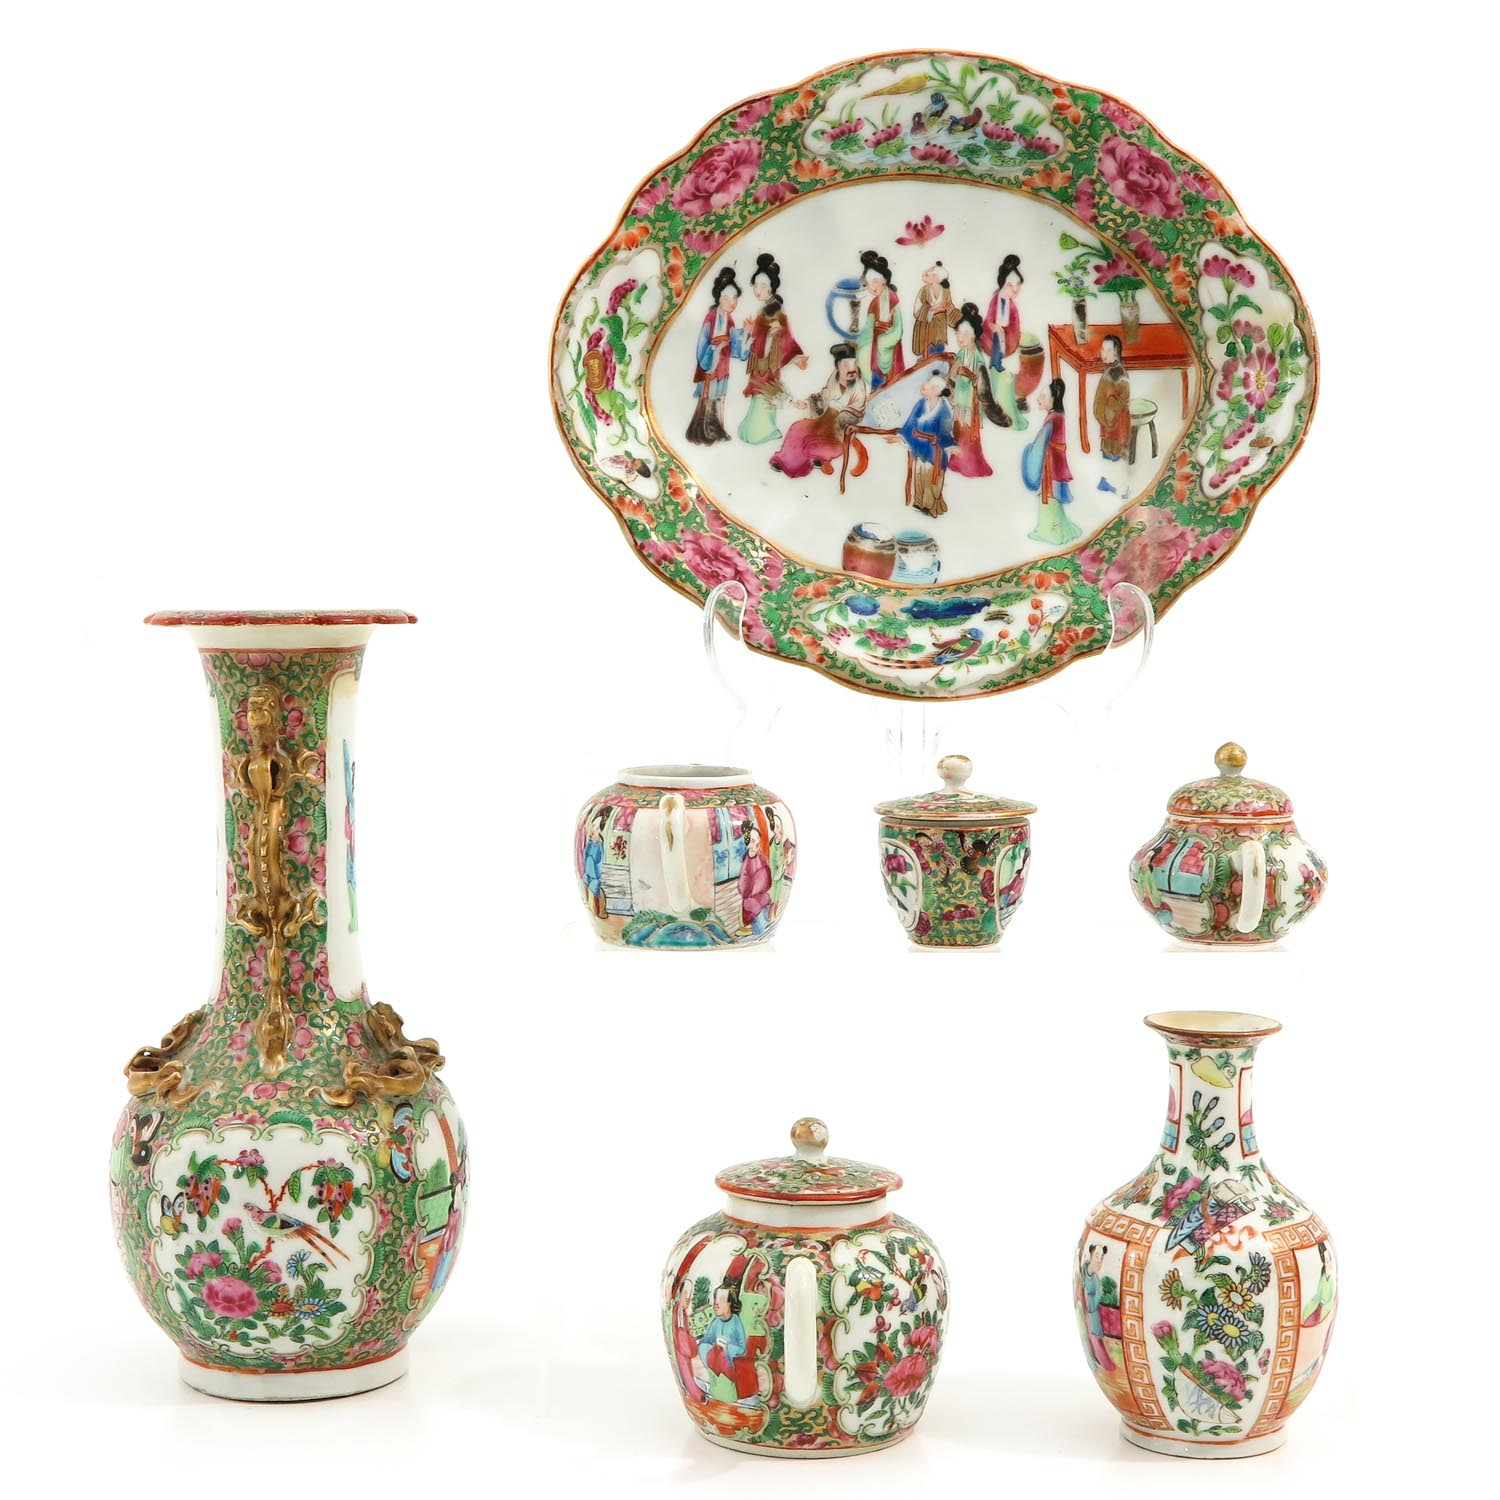 A Collection of Cantonese Porcelain - Image 2 of 10